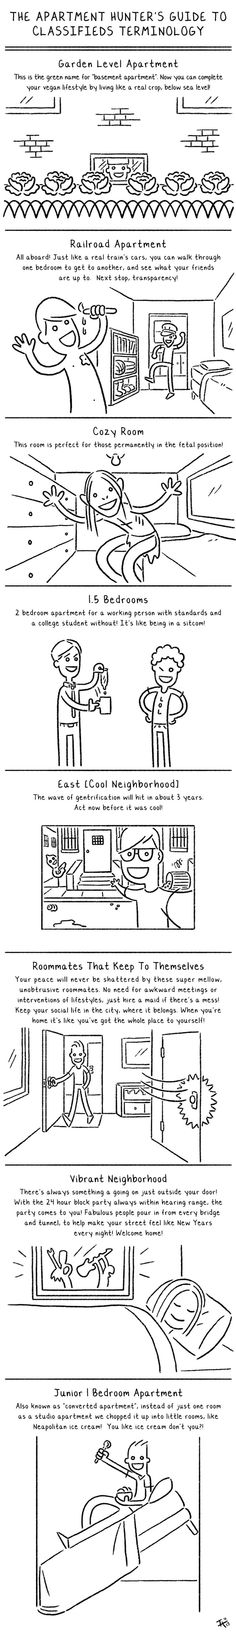 Apartment Hunter's Guide to Classifieds Terminology. In case you need it.